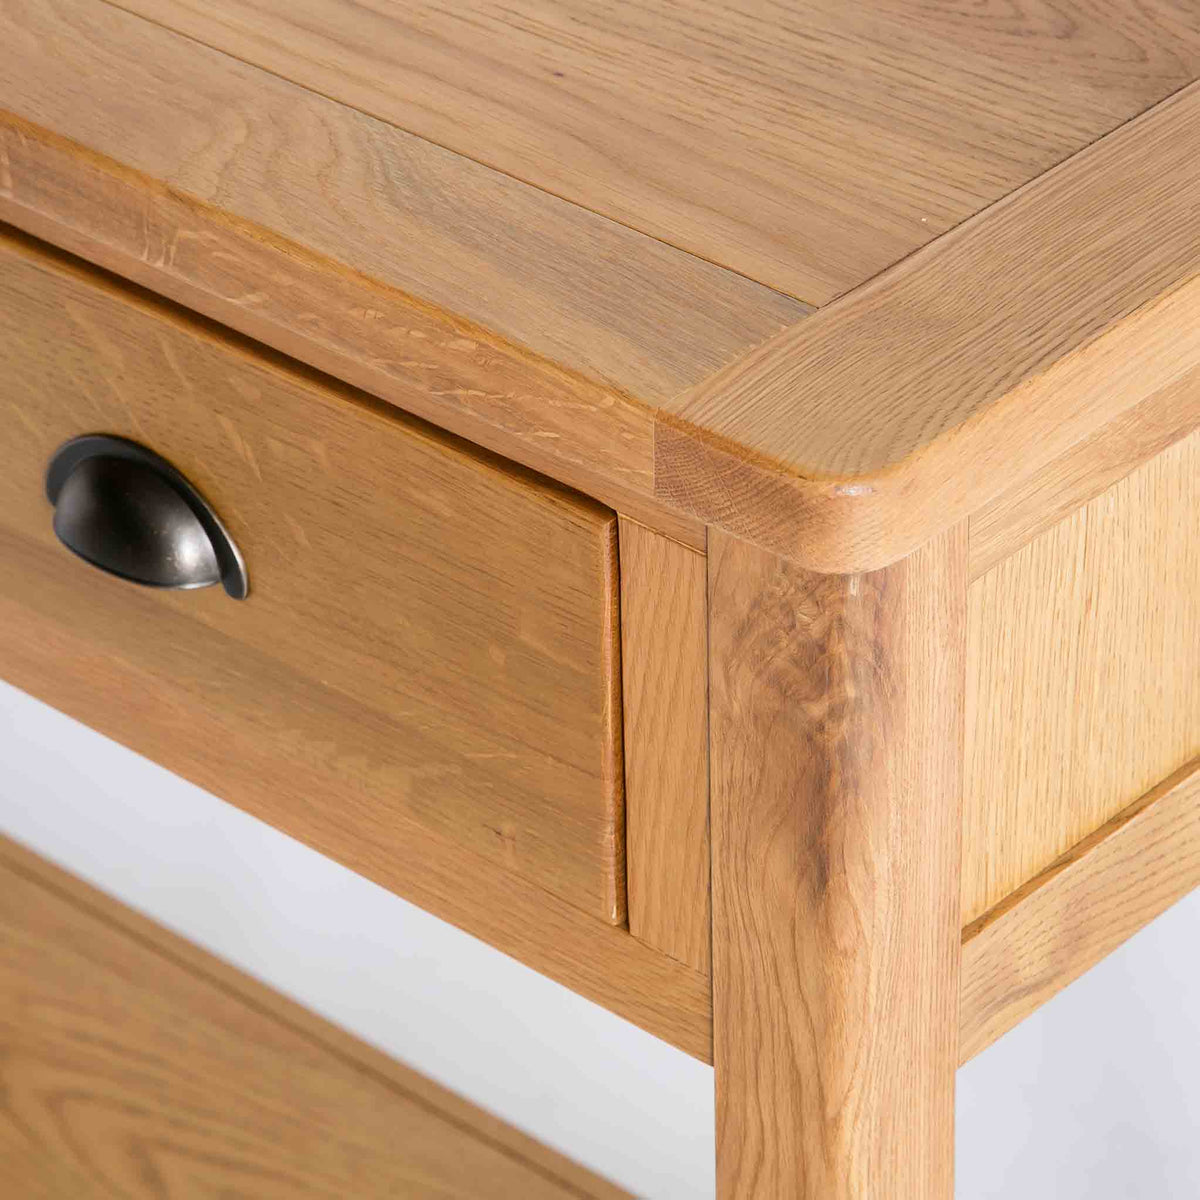 close up of rounded corners on the Roseland Oak Console Table